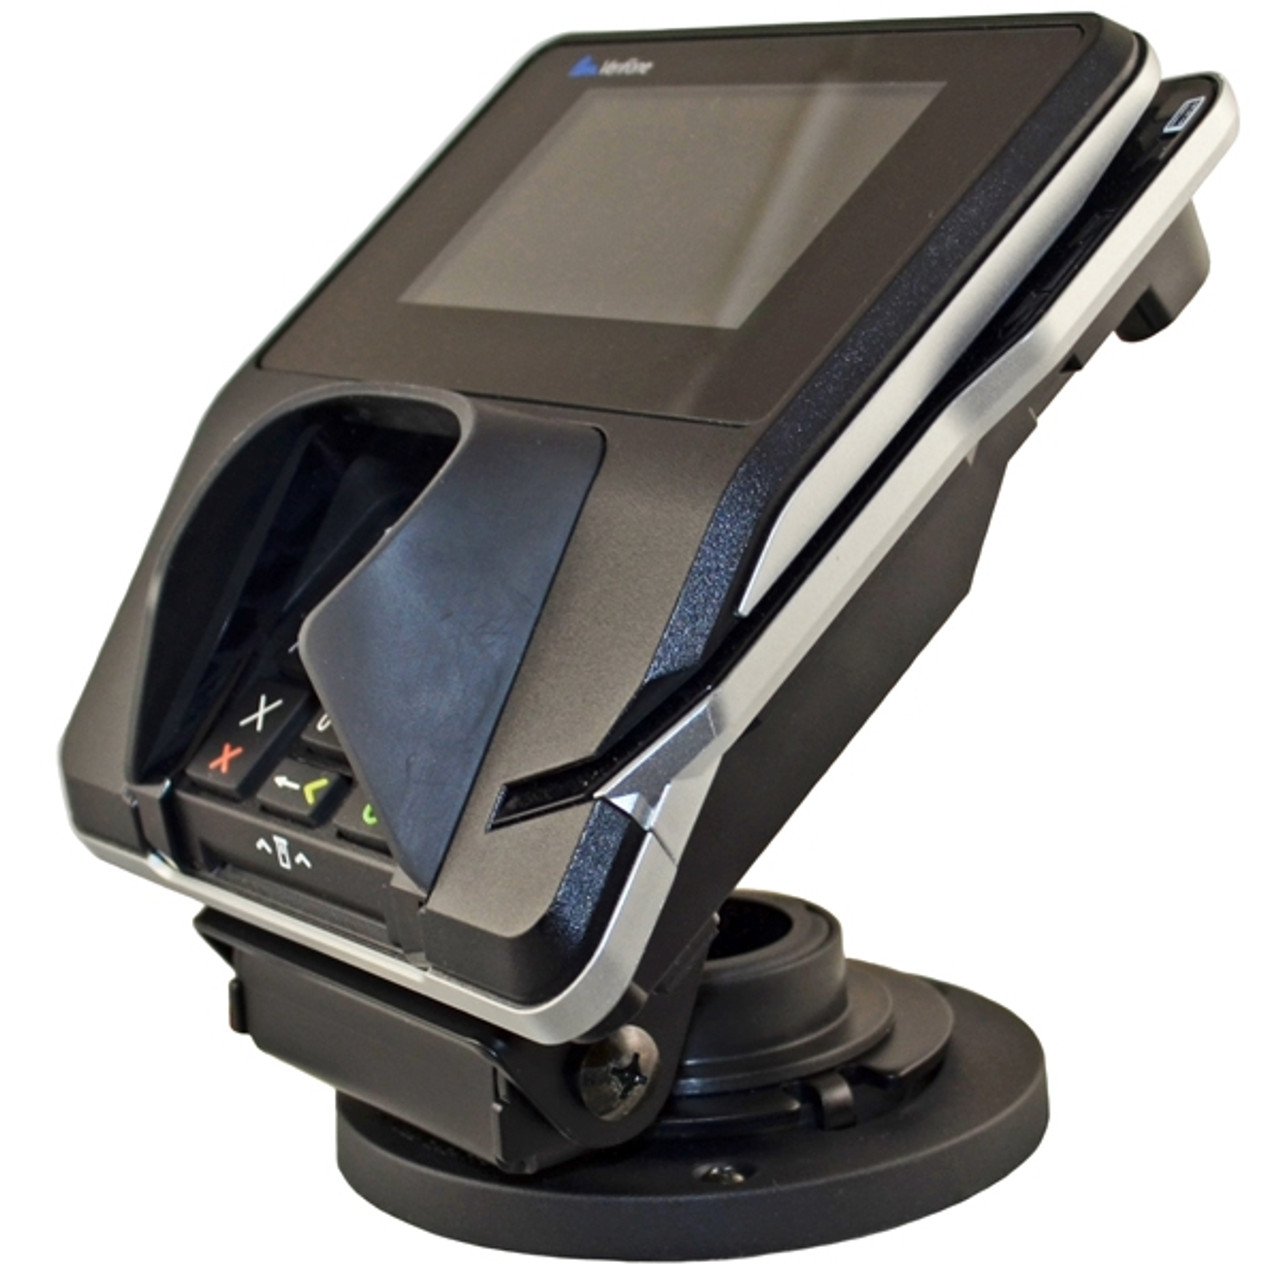 VeriFone MX915 Credit Card Stand Open Hole Flip Up by Swivel Stands